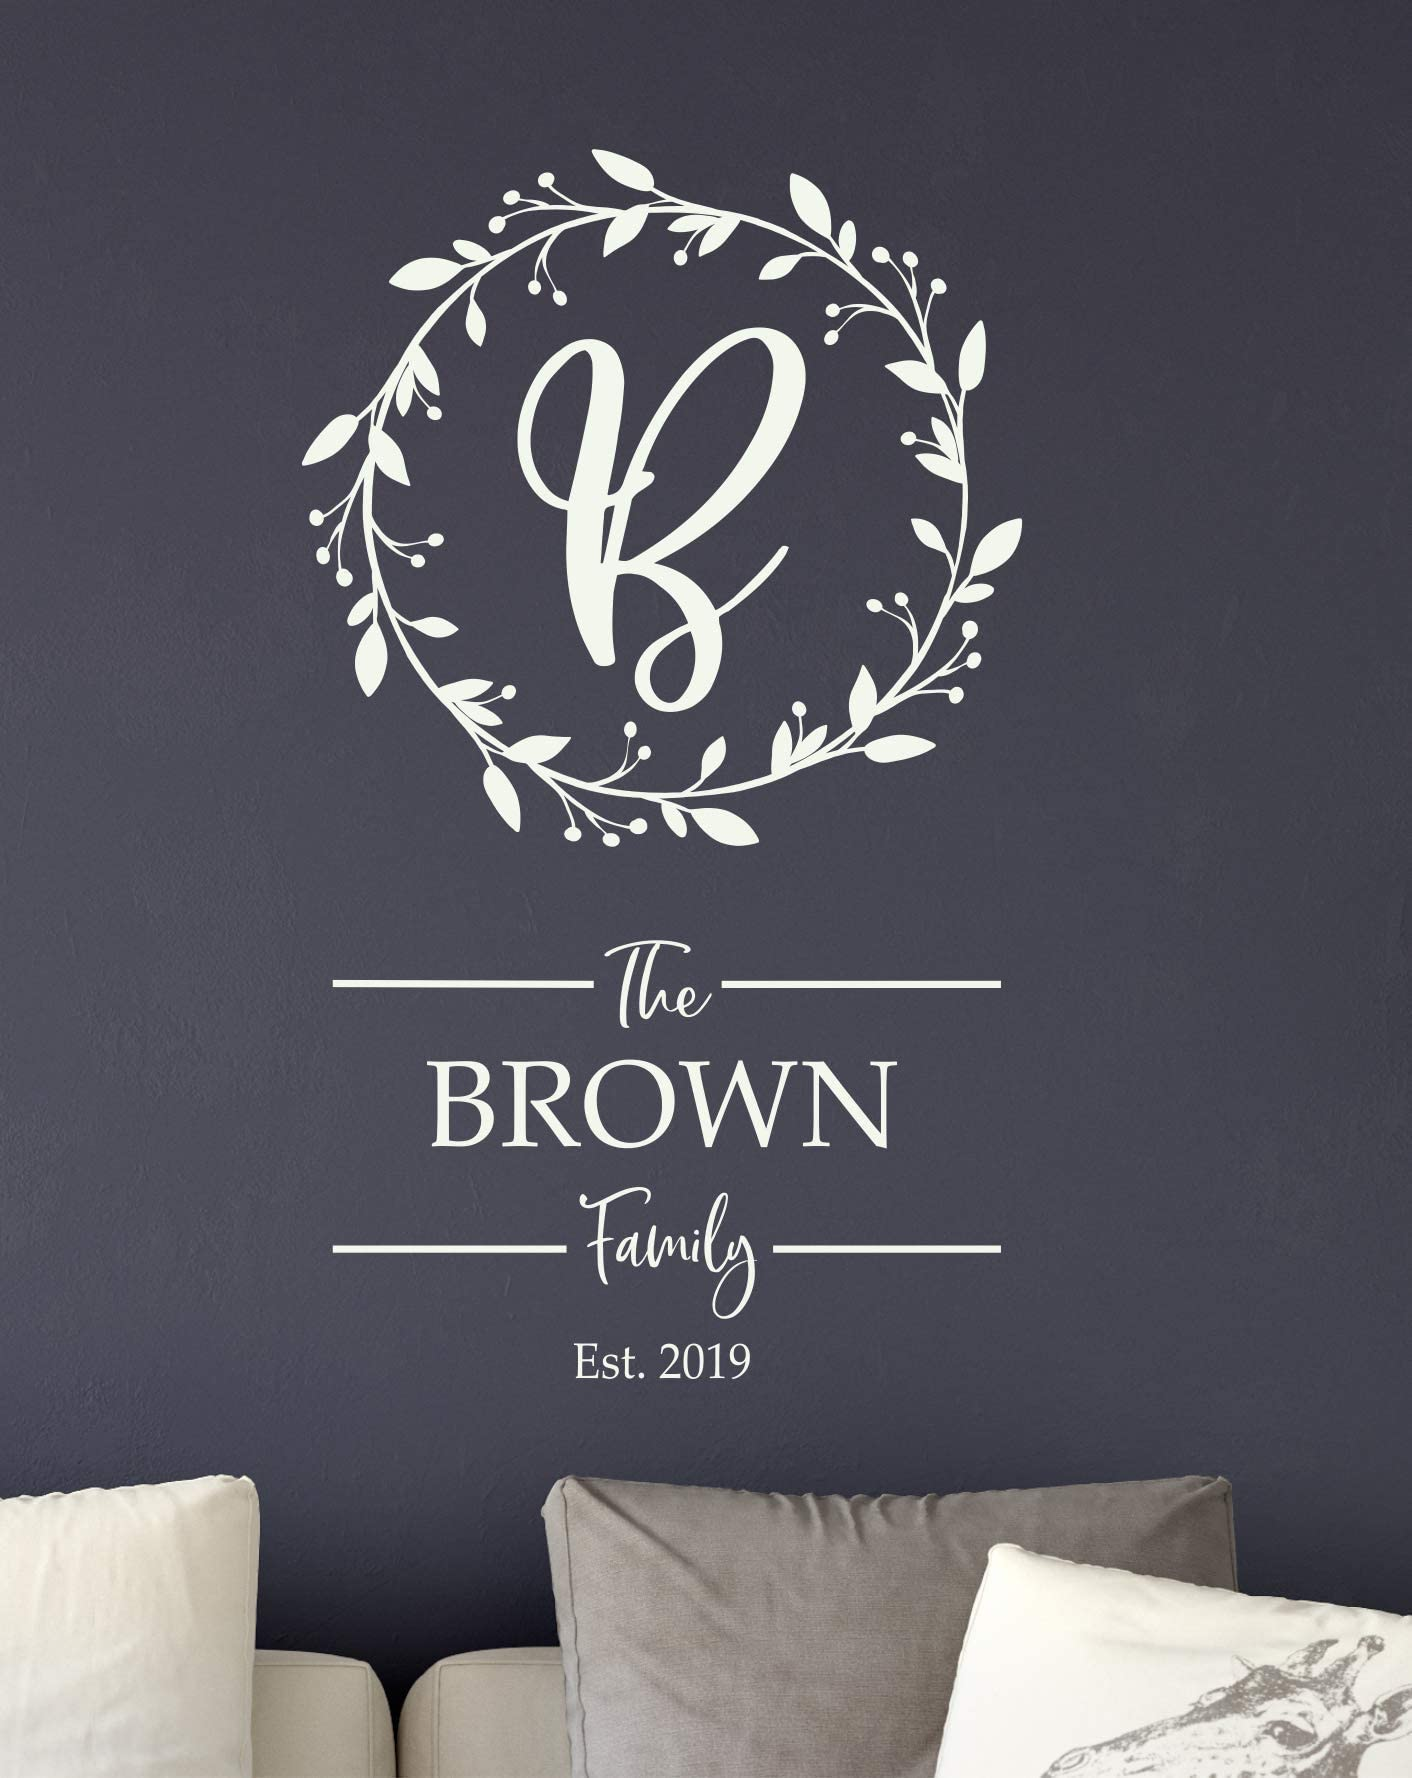 Family Name Monogram Wall Decal Removable Vinyl Wall Decal Monogram Name Initial Decal Family Room Entryway Living Room Made in the USA